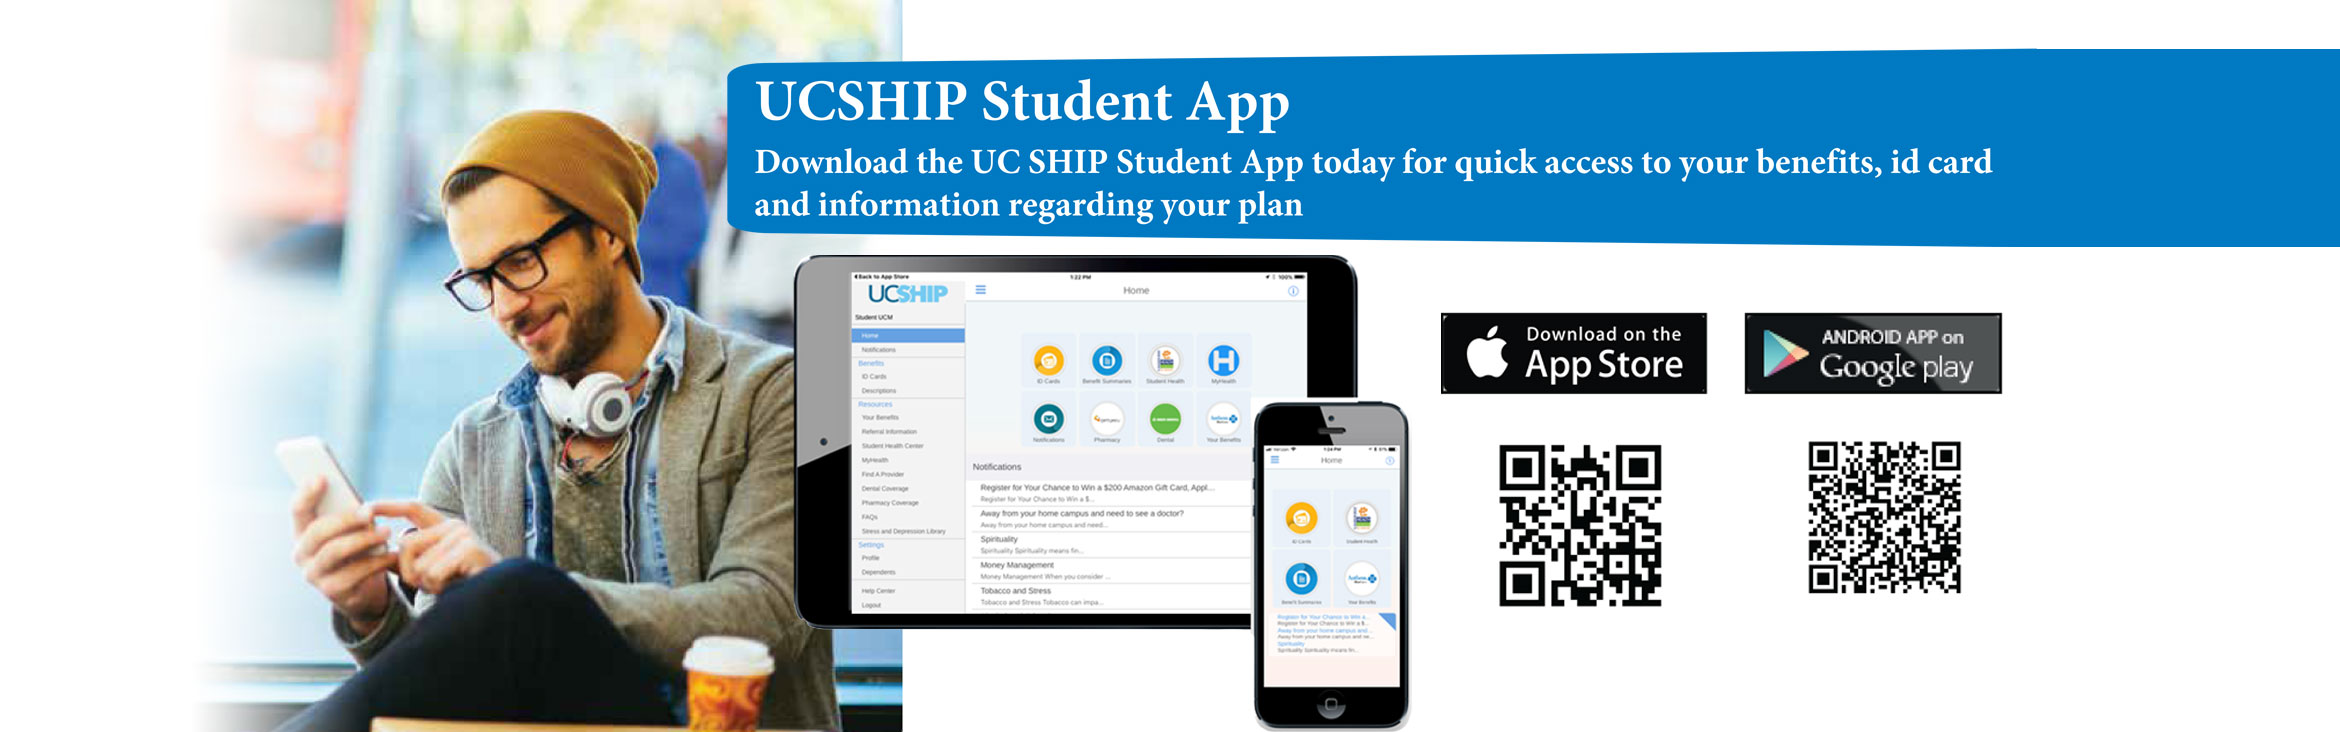 UCSHIP Student App, Download the UC SHIP Student App today for quick access to your benefits, id card and information regarding your plan